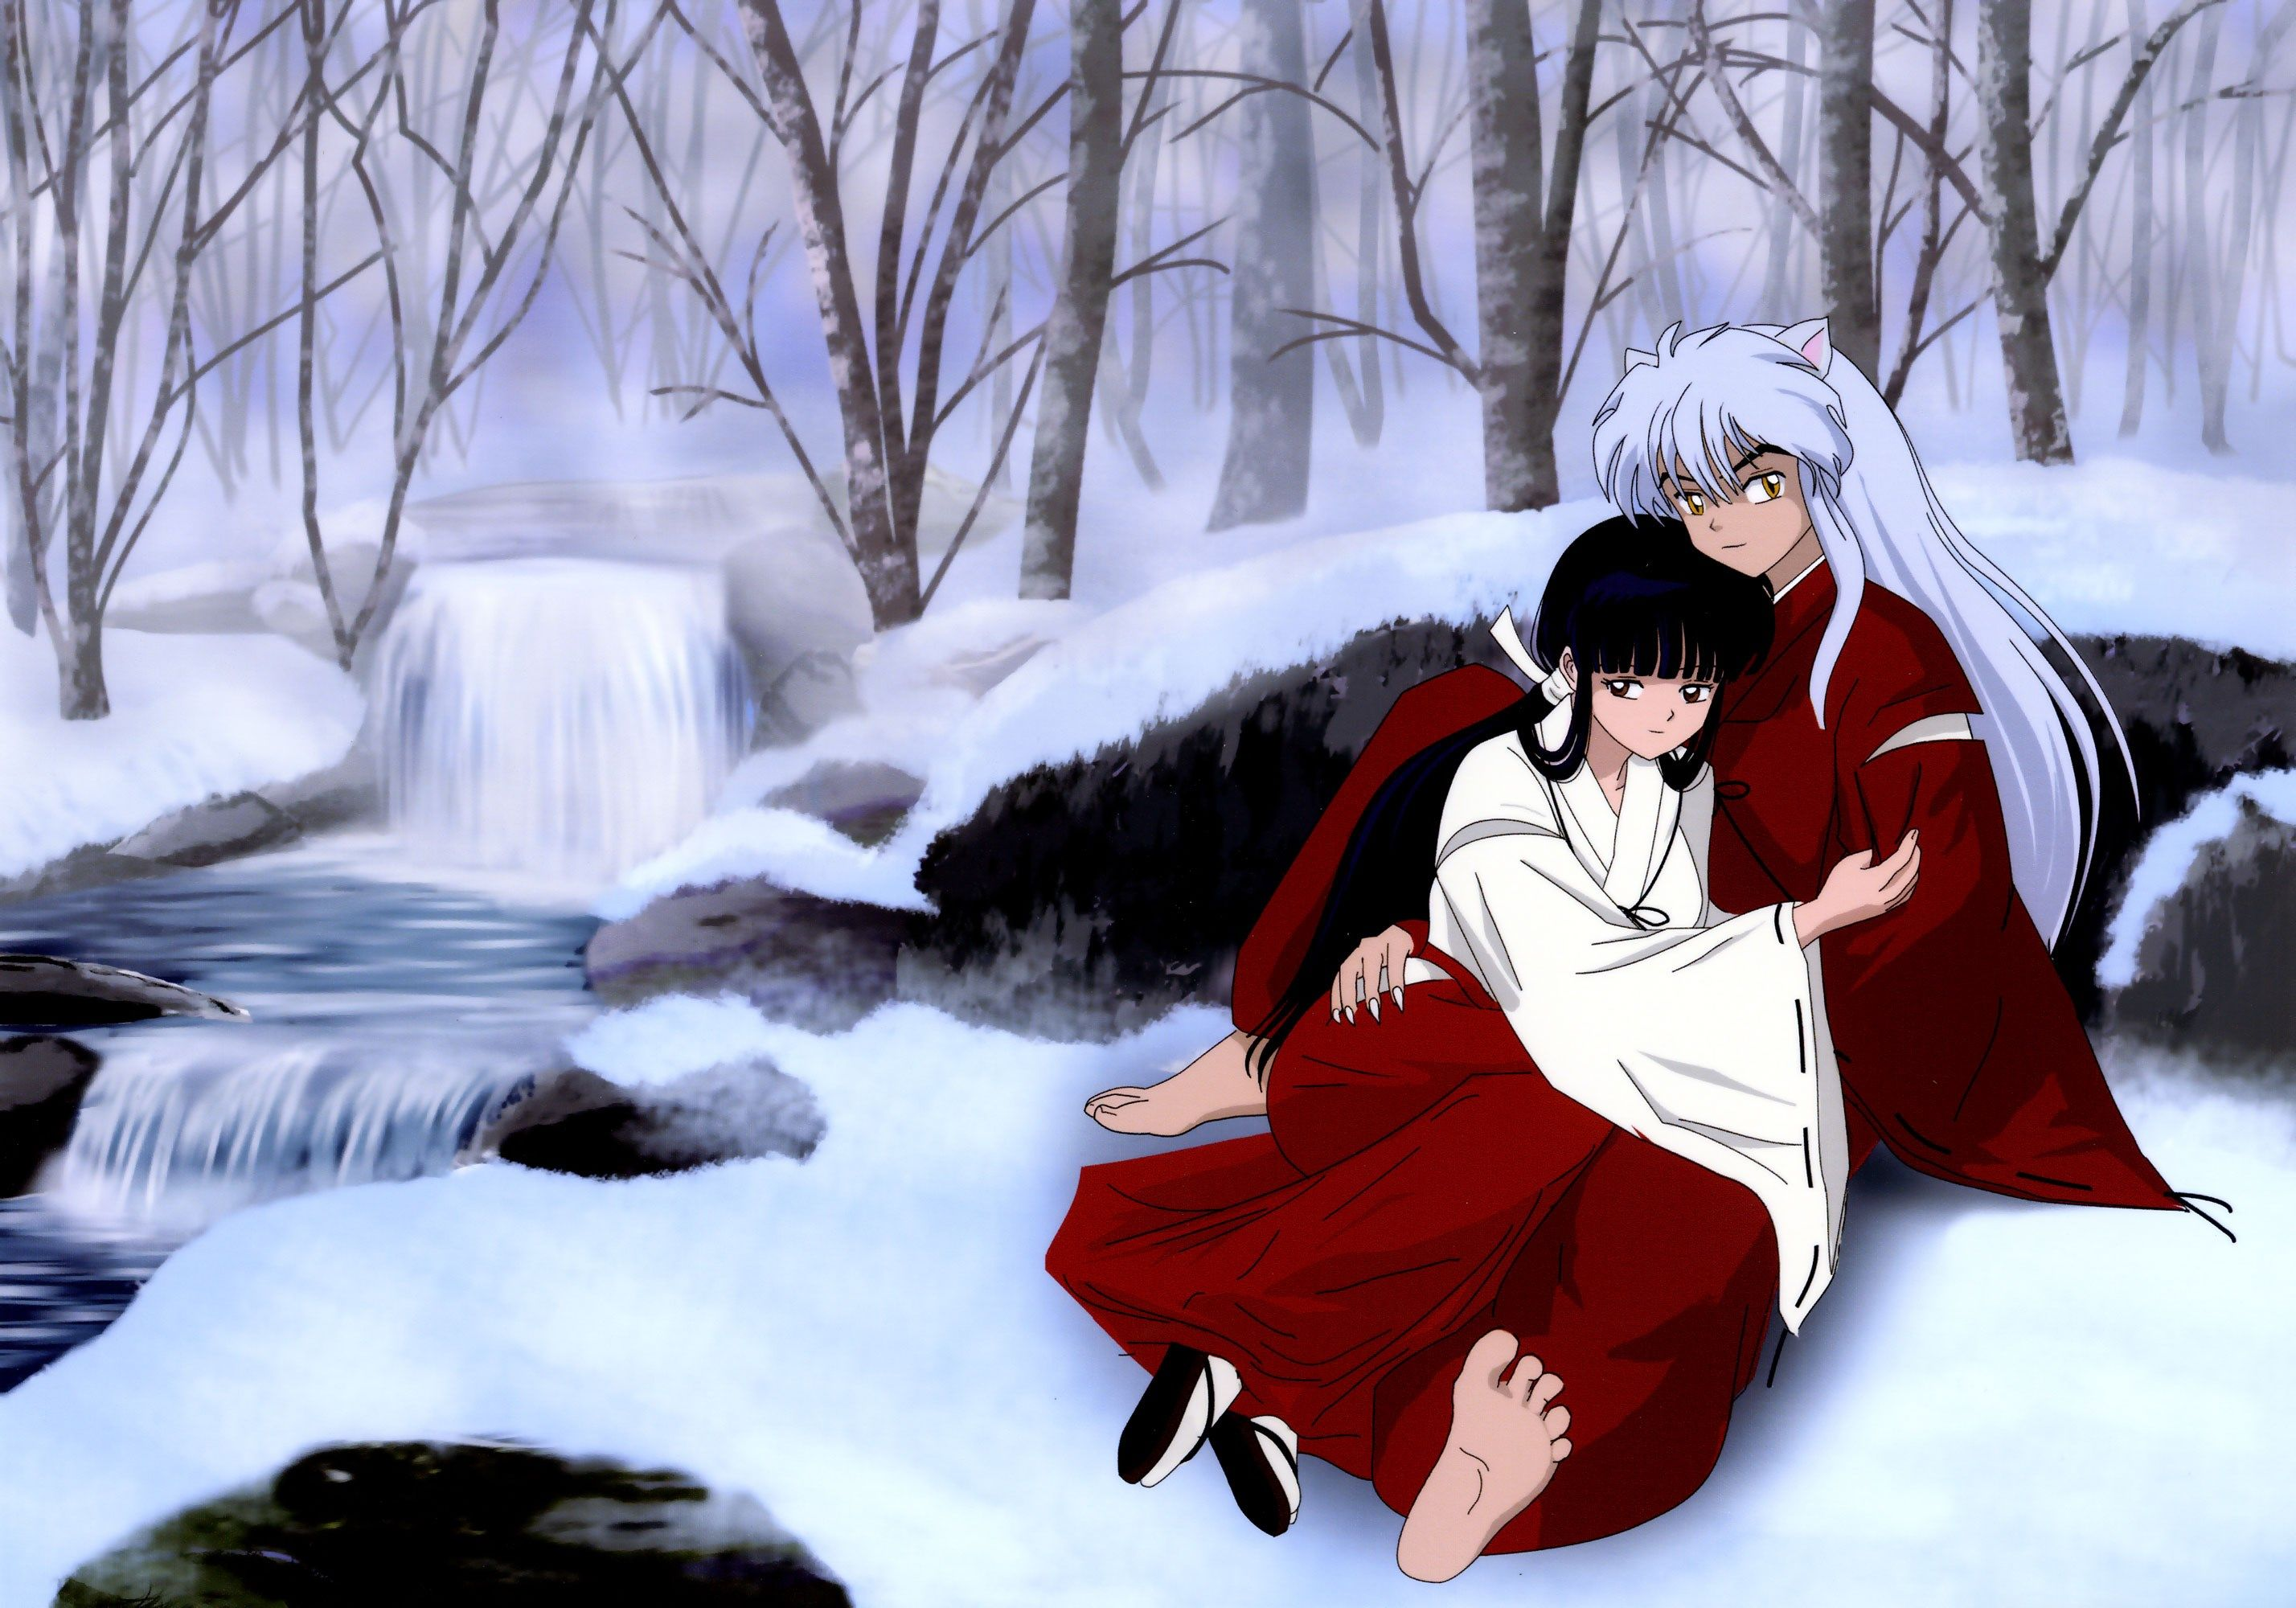 Anime Iphone 6 Wallpapers Hd And Anime Iphone 6 Plus Wallpapers 1080p Page 12 Inuyasha Animasi Wallpaper Anime